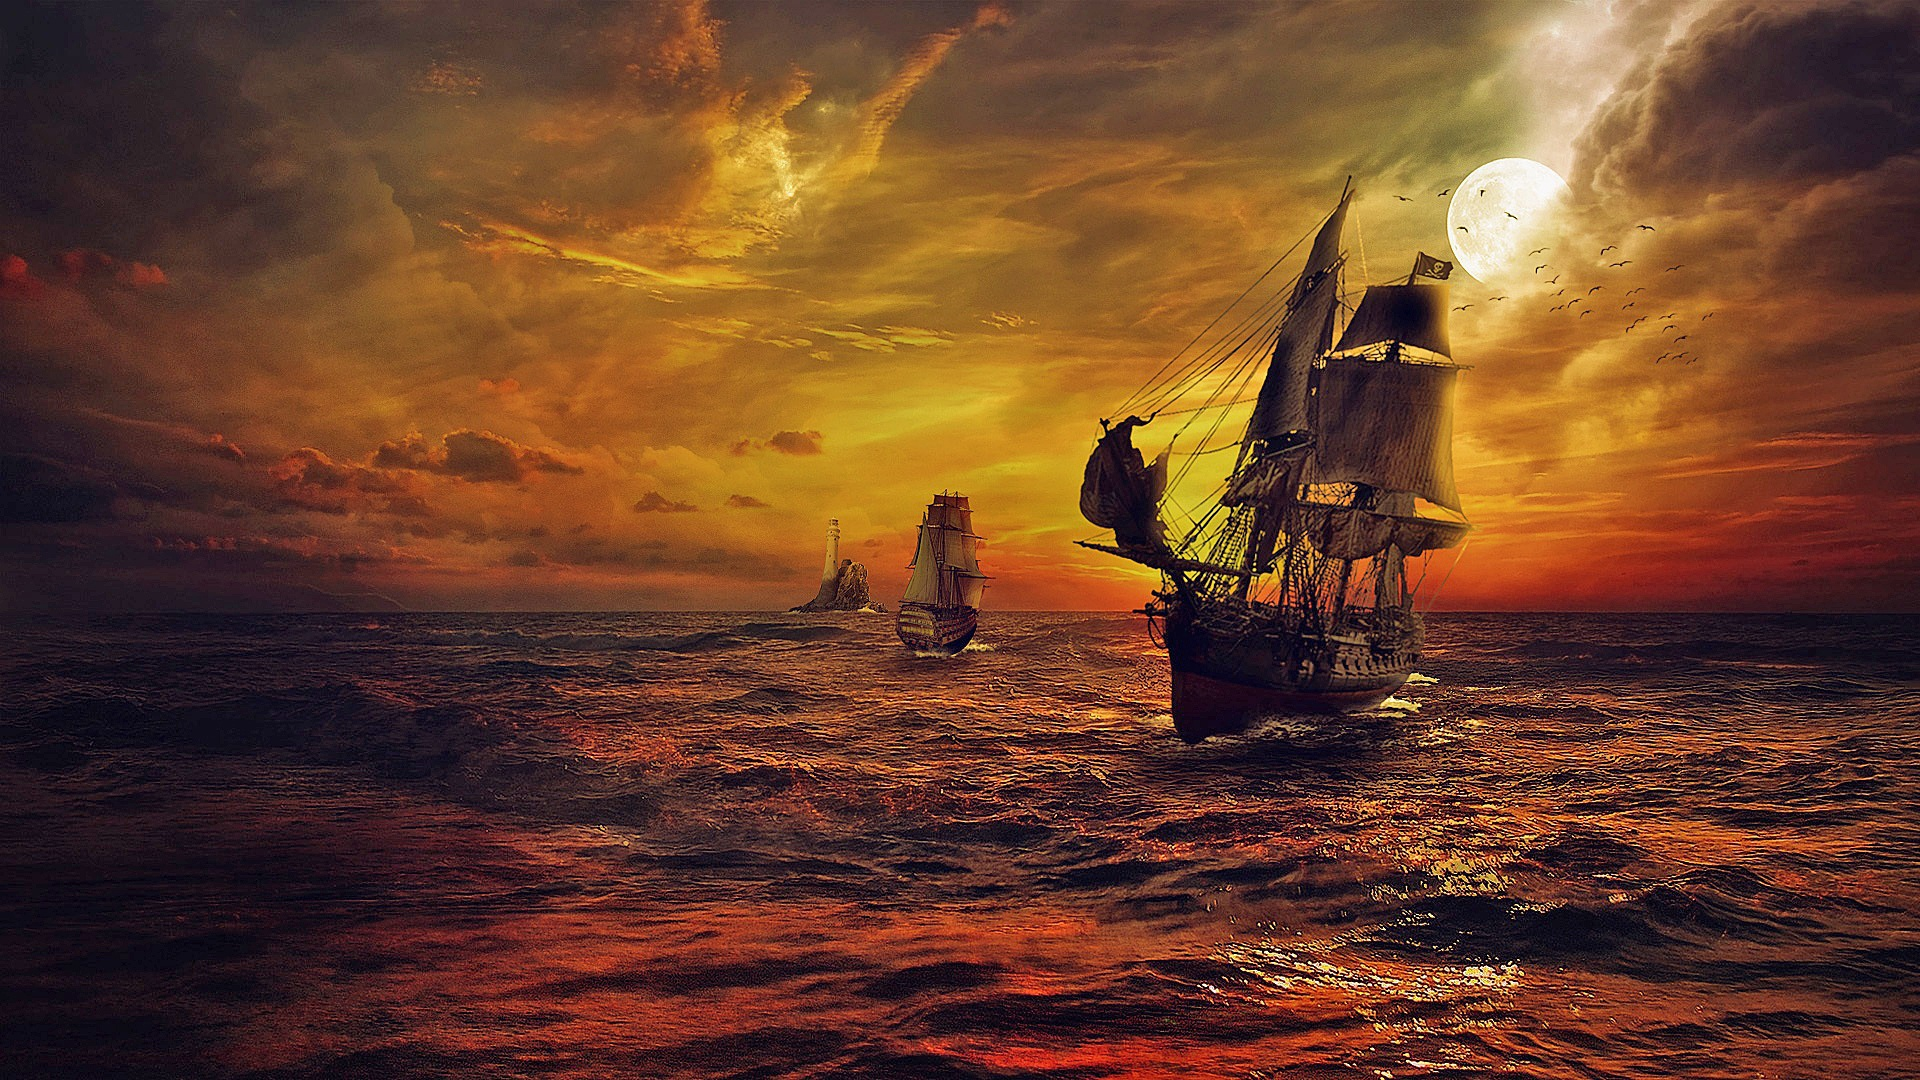 PIRATE SHIPS ( DeskScapes )